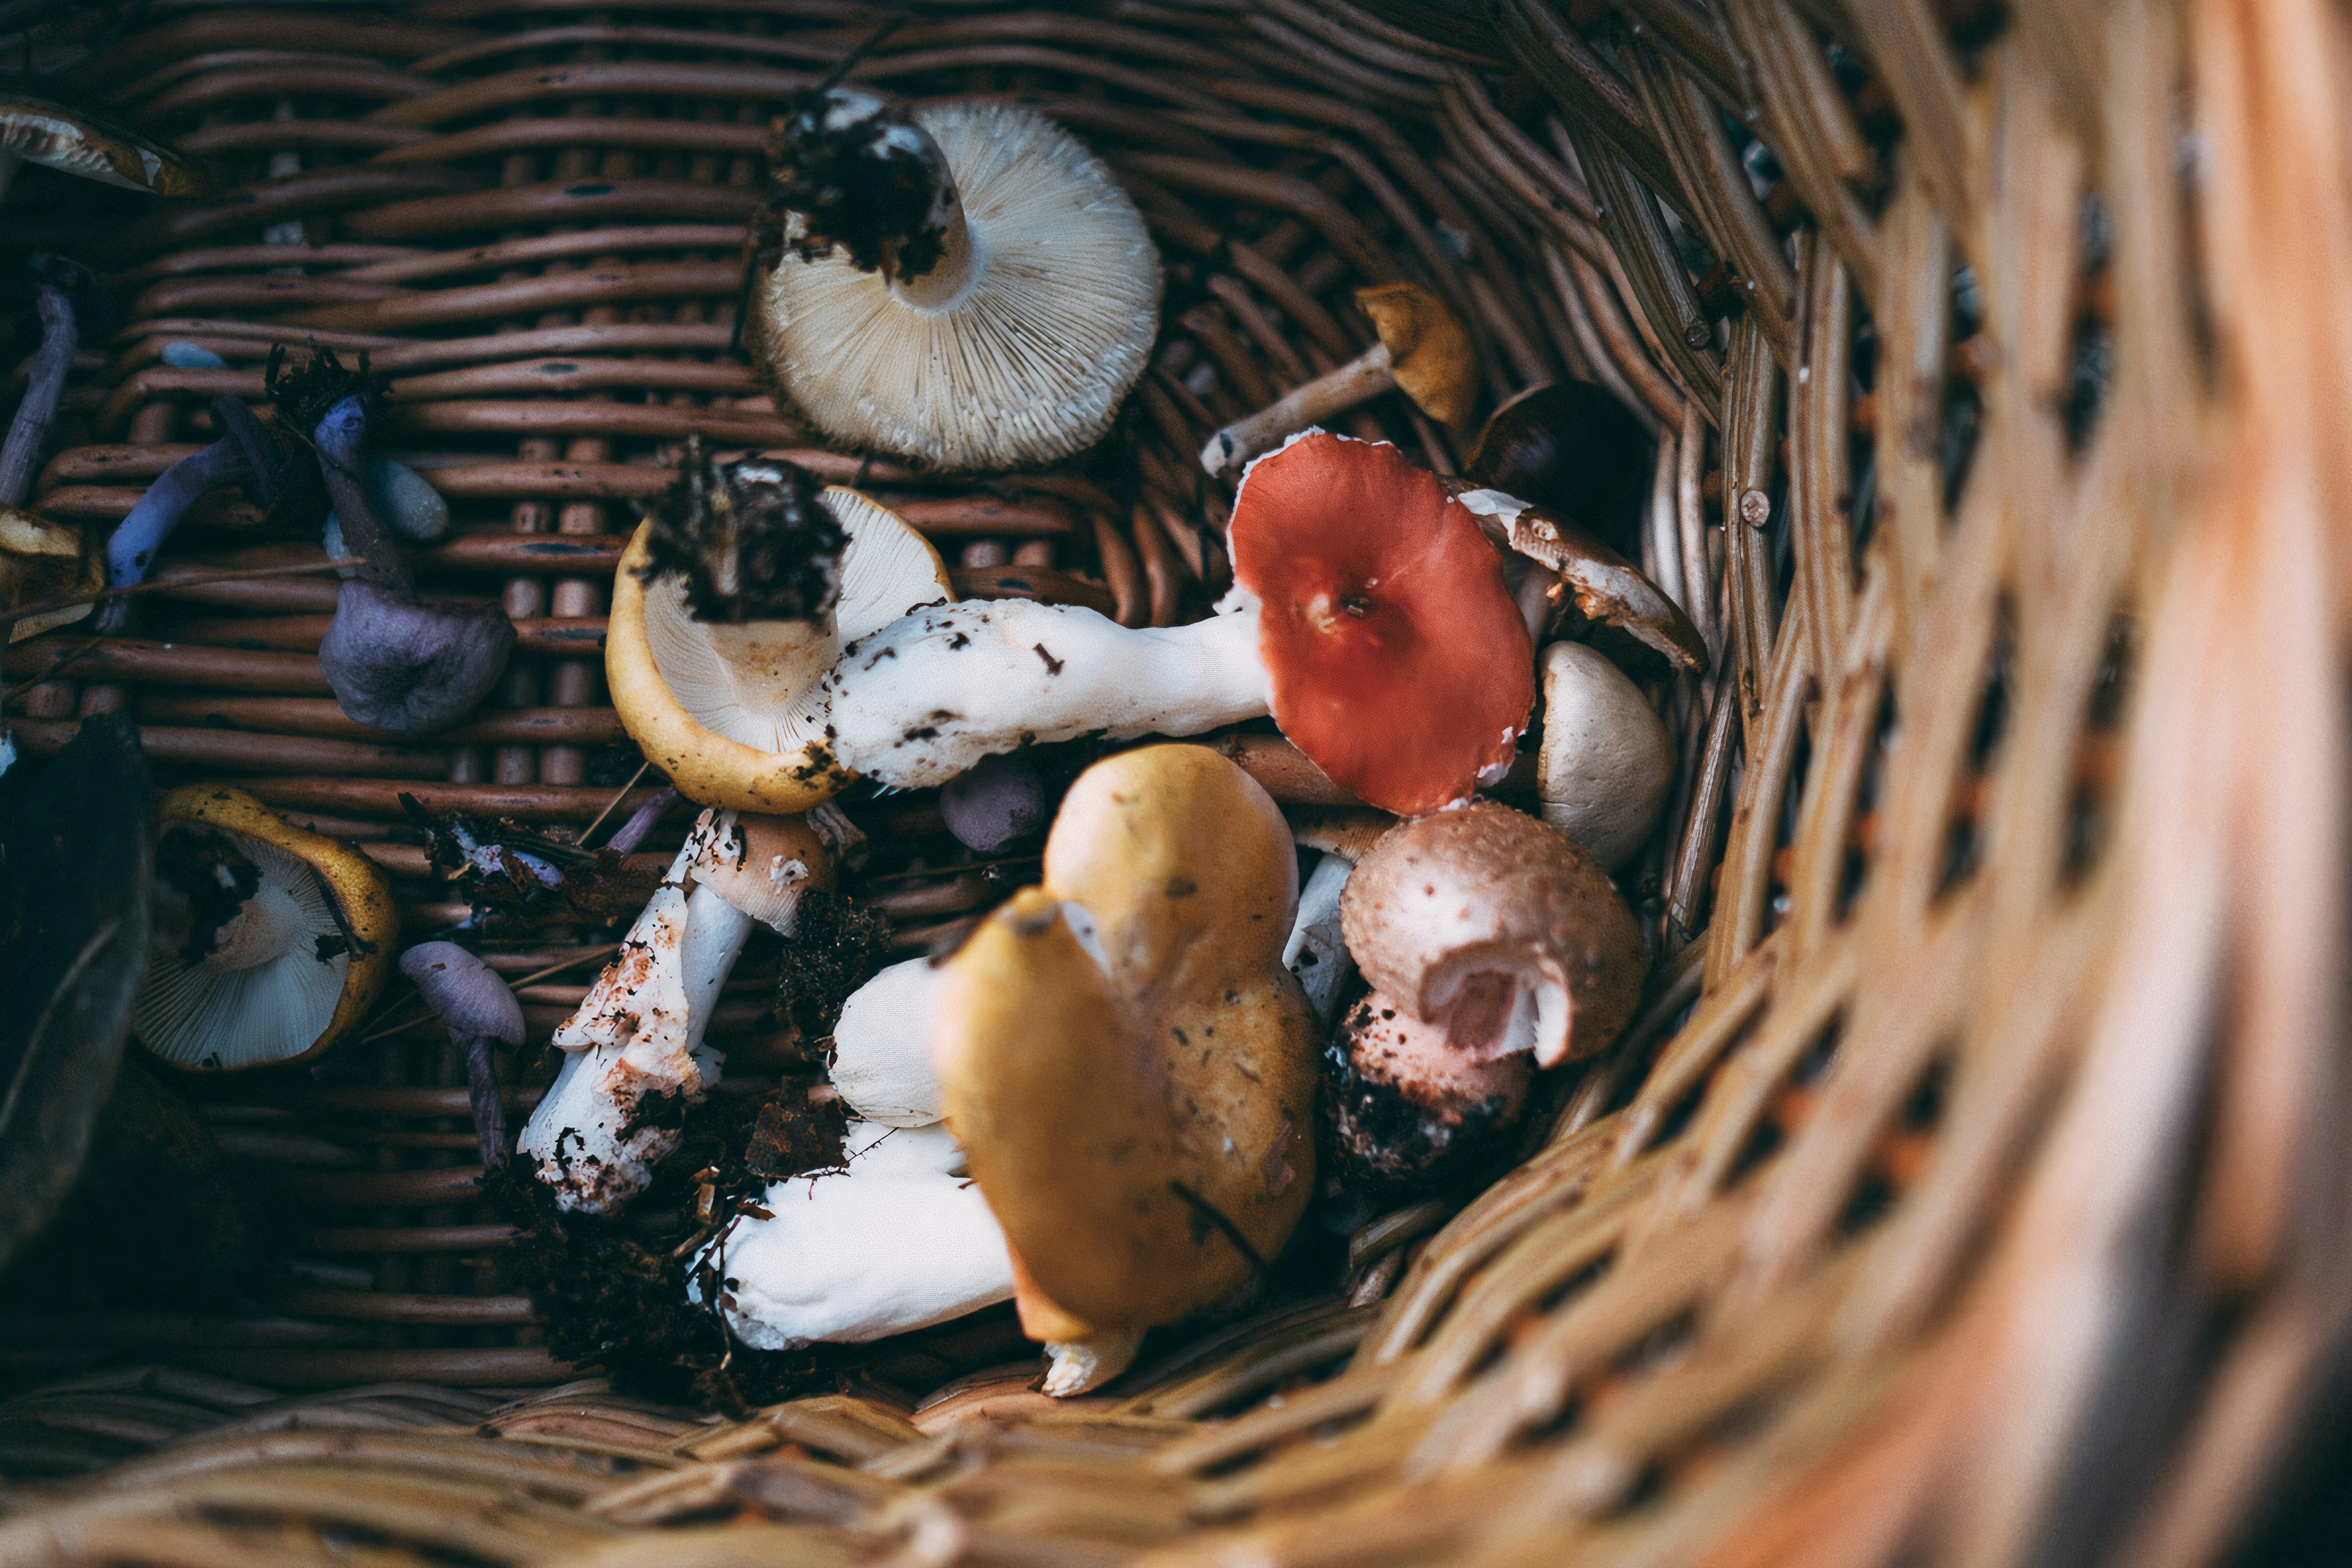 Vancouver Island is a wild food smorgasbord. If you forage, here's how to do so respectfully.